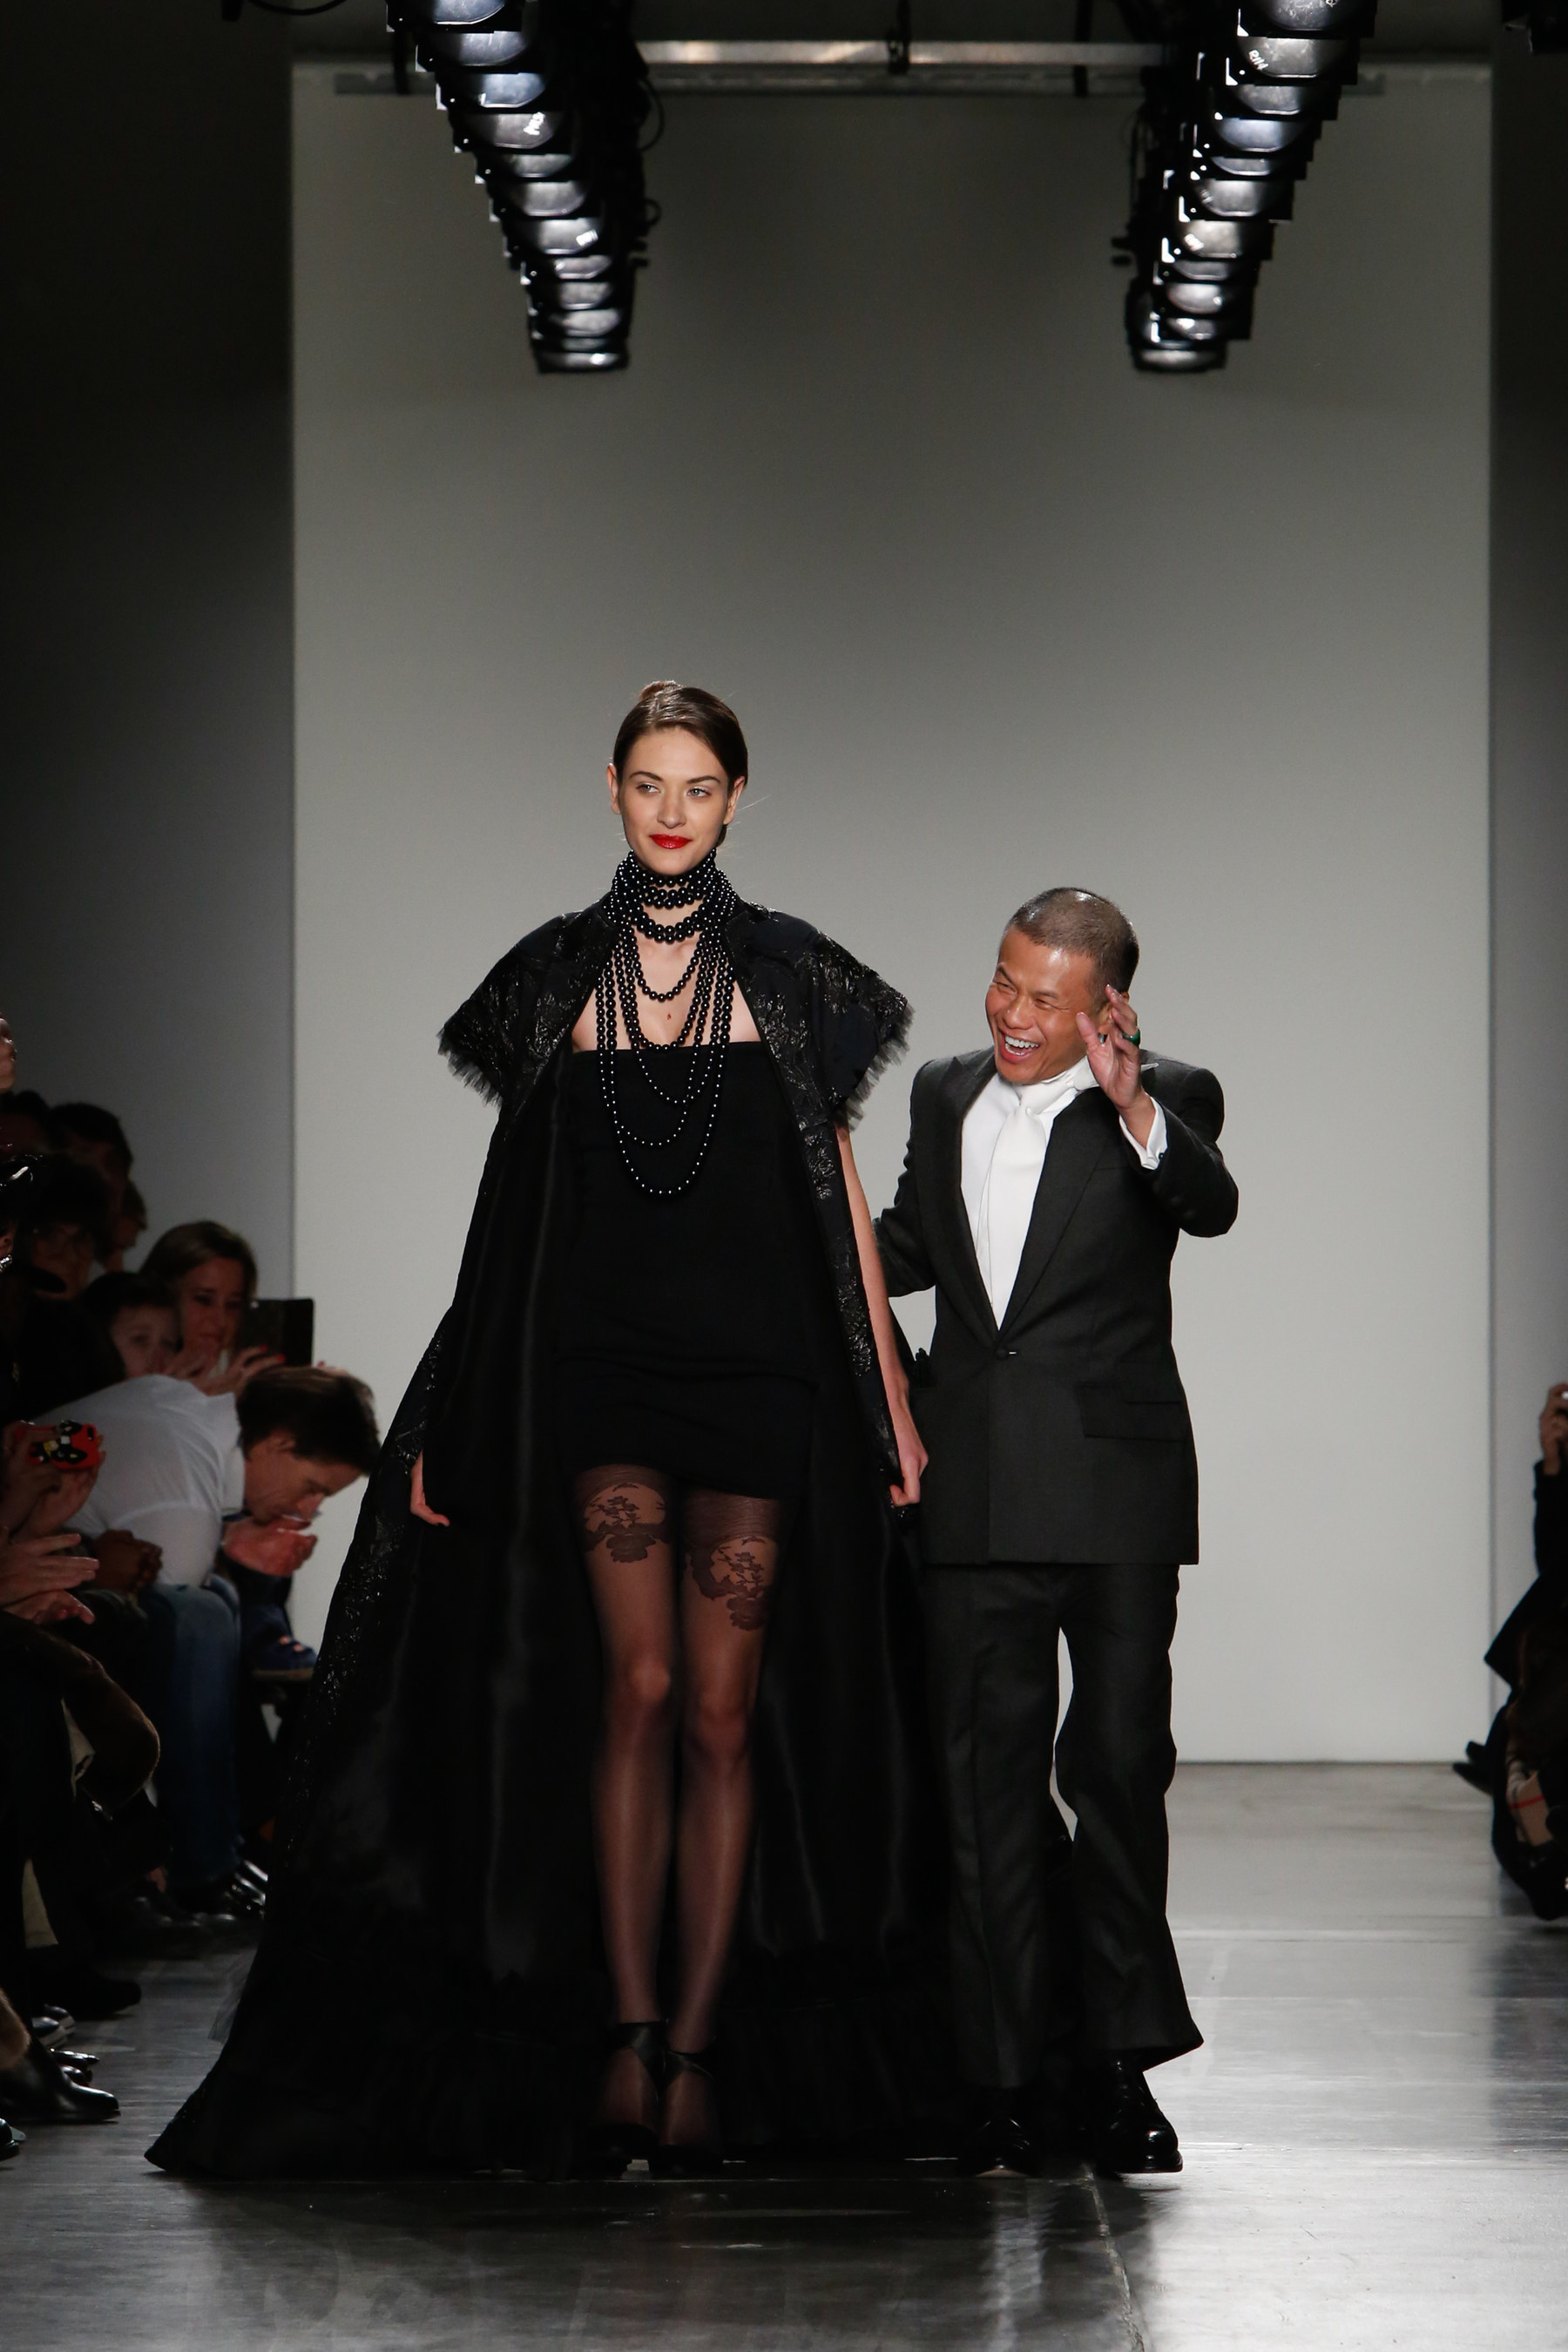 f68aa21650 Fashion designer, Zang Toi, with the final look of his Fall 2016 Collection.